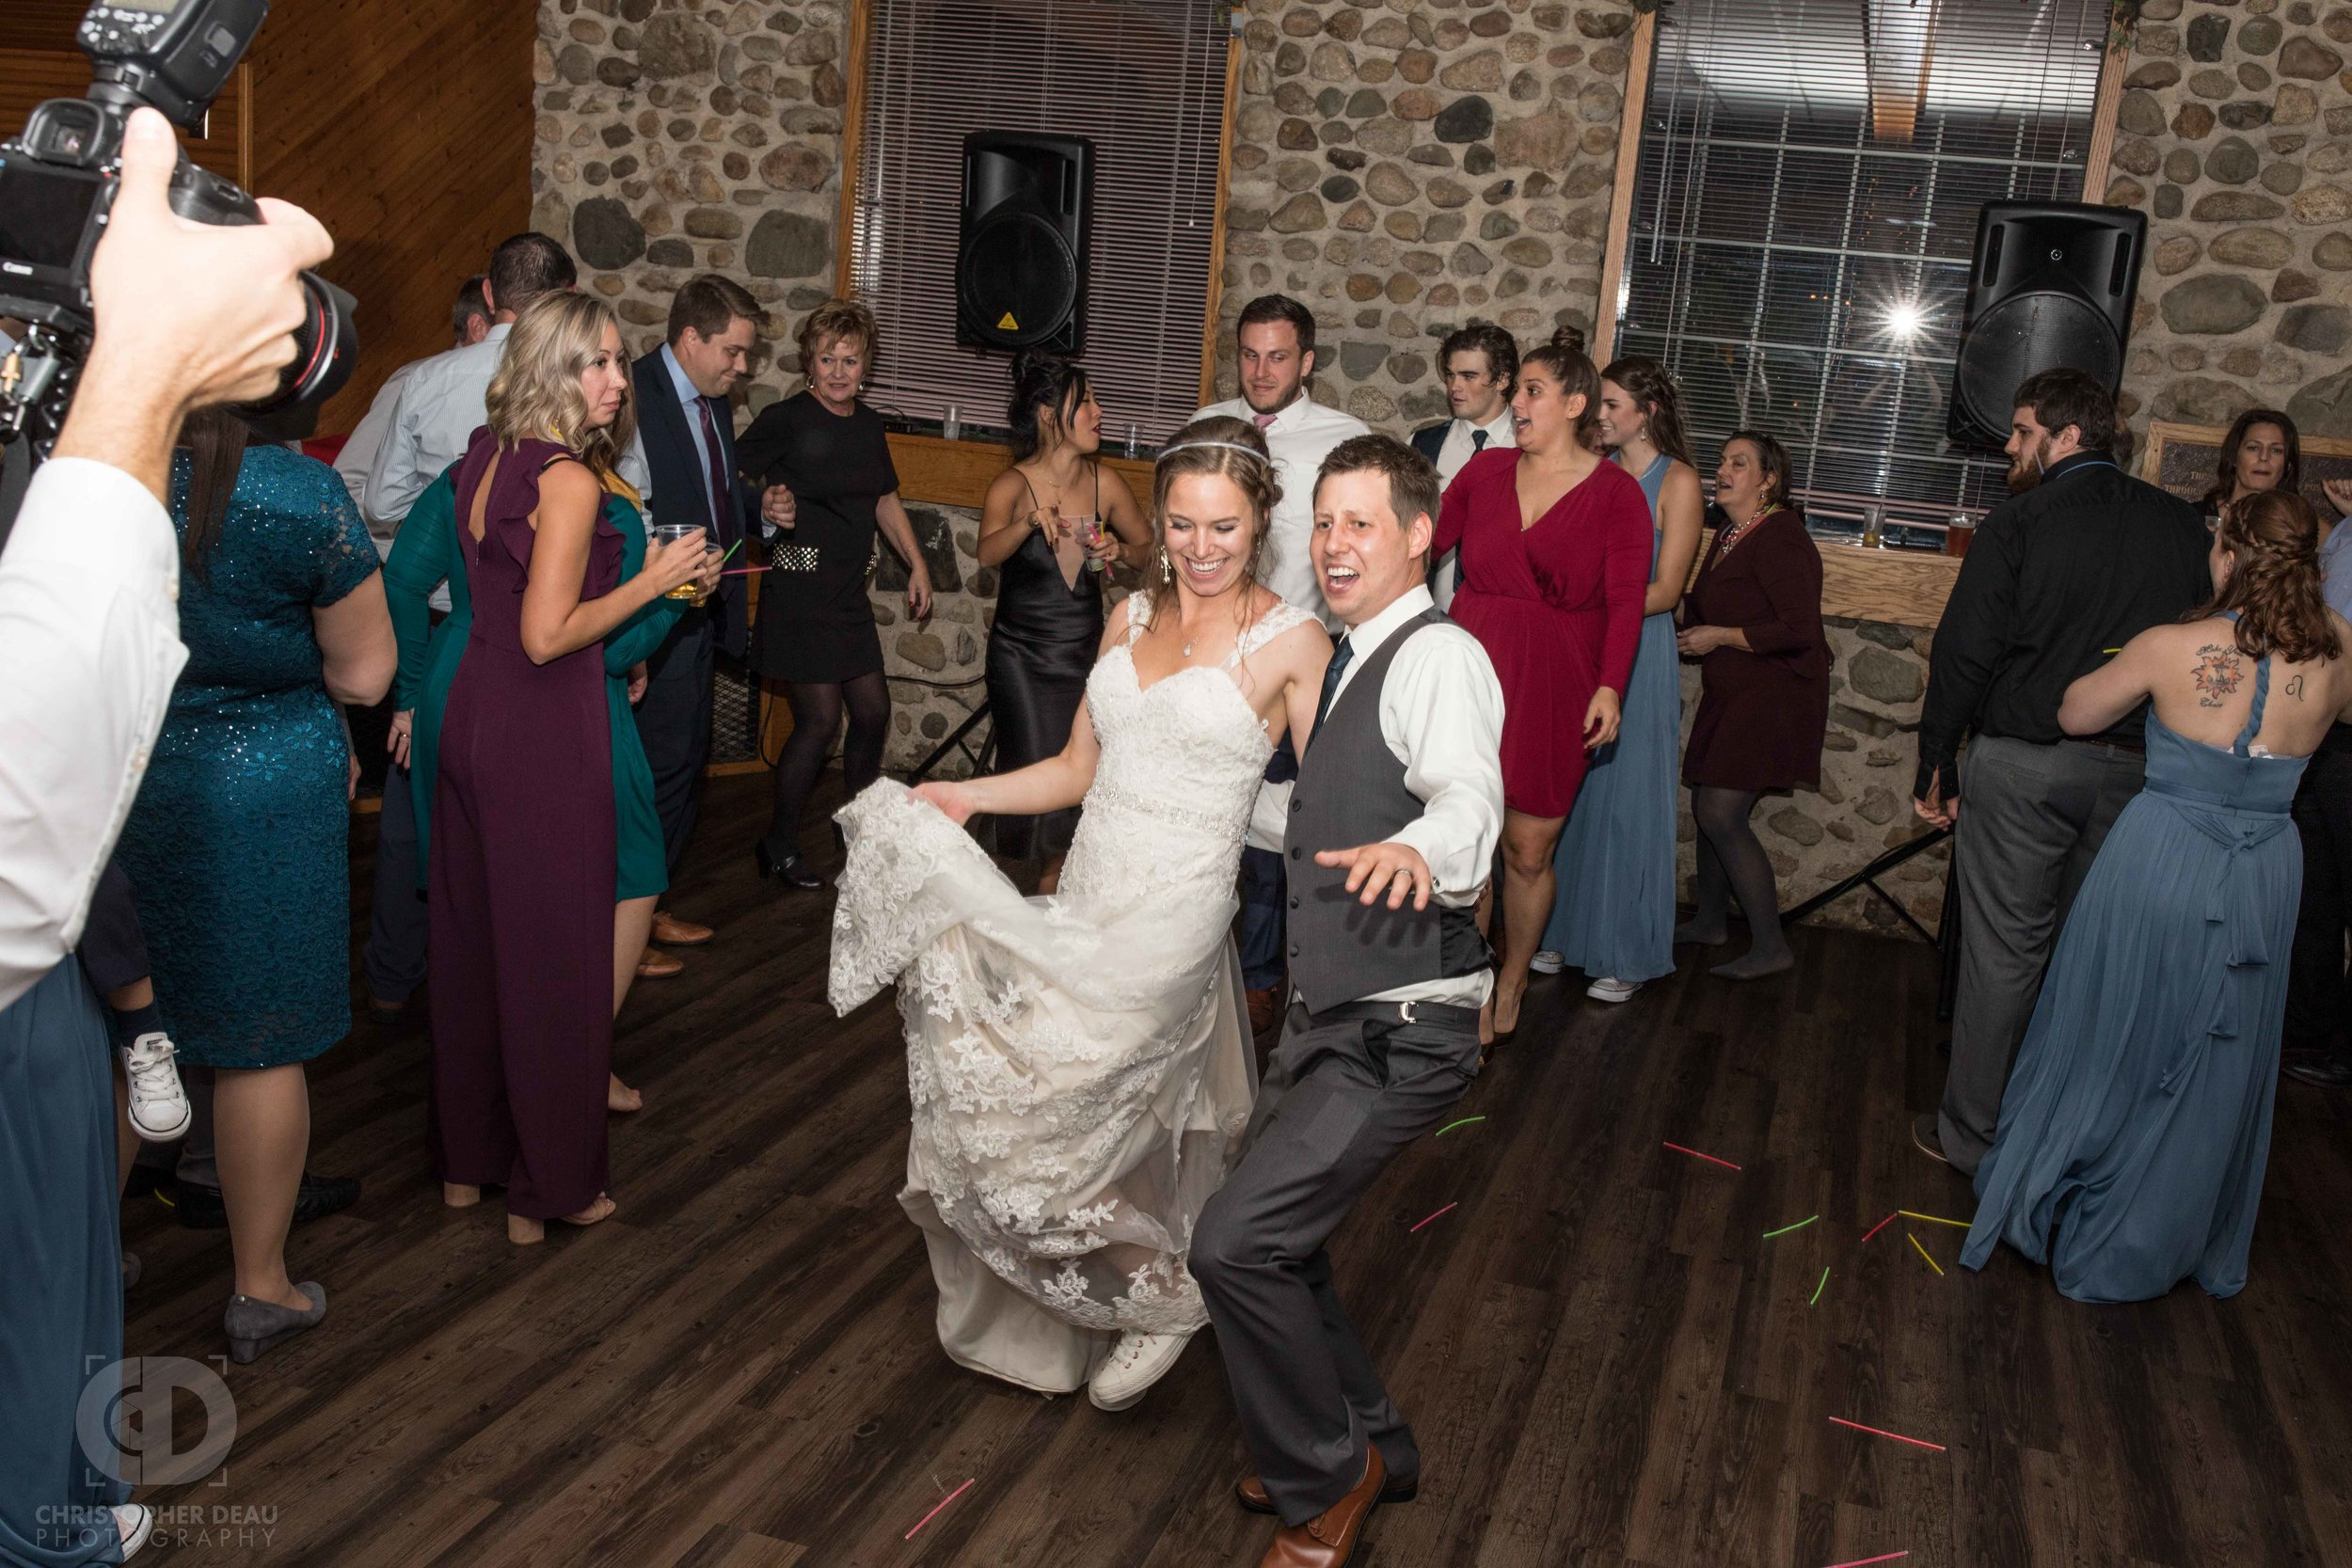 Bride and Groom dancing in a crowd during the reception